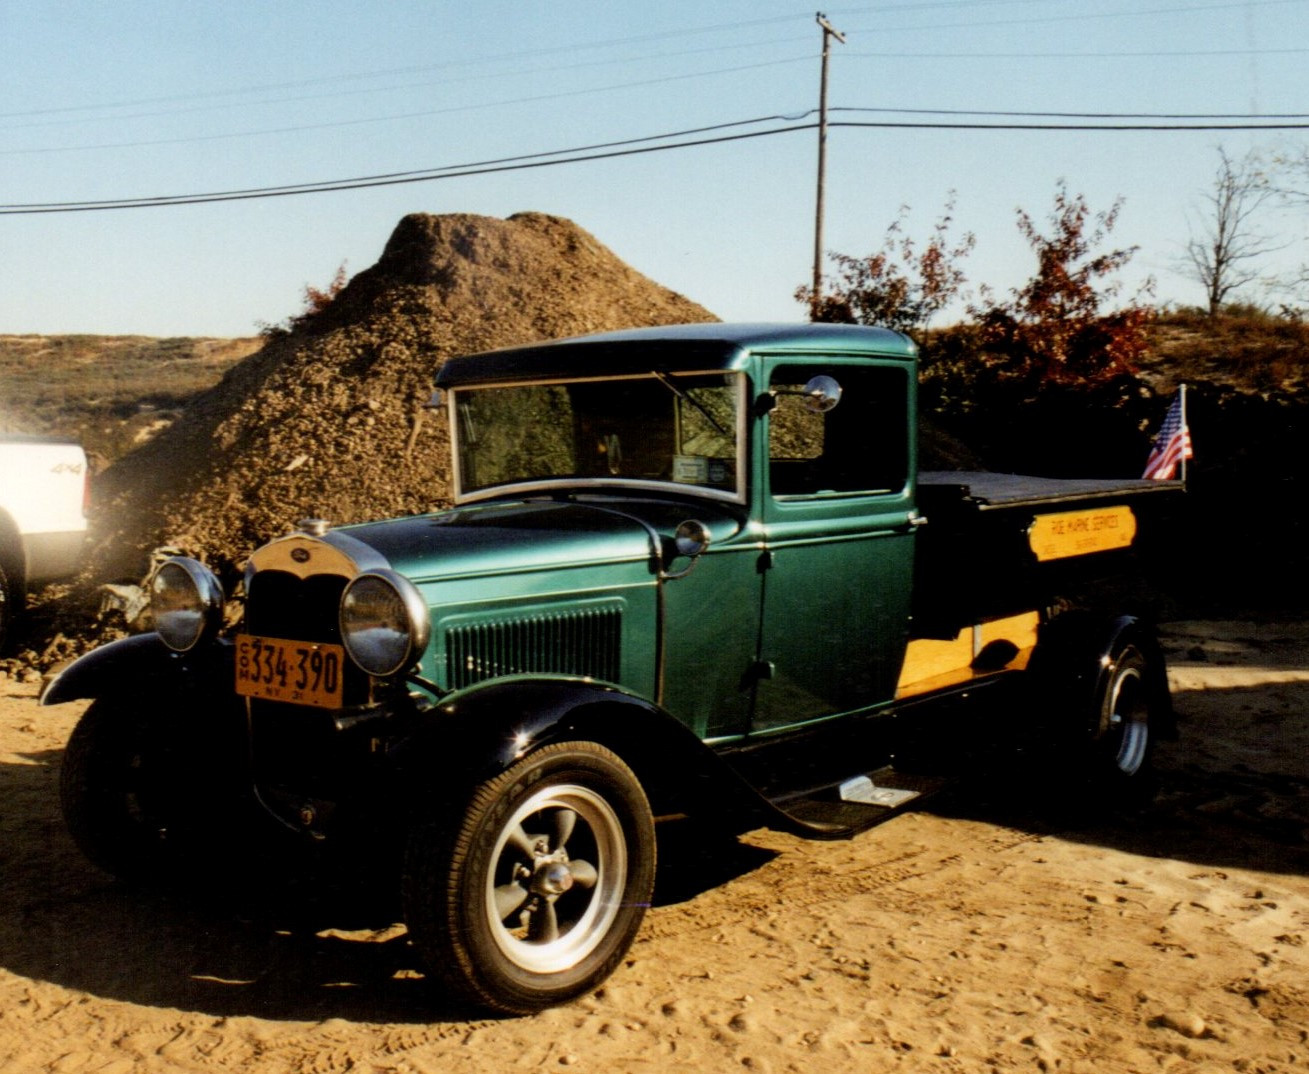 William Roe's 1931 Ford dump